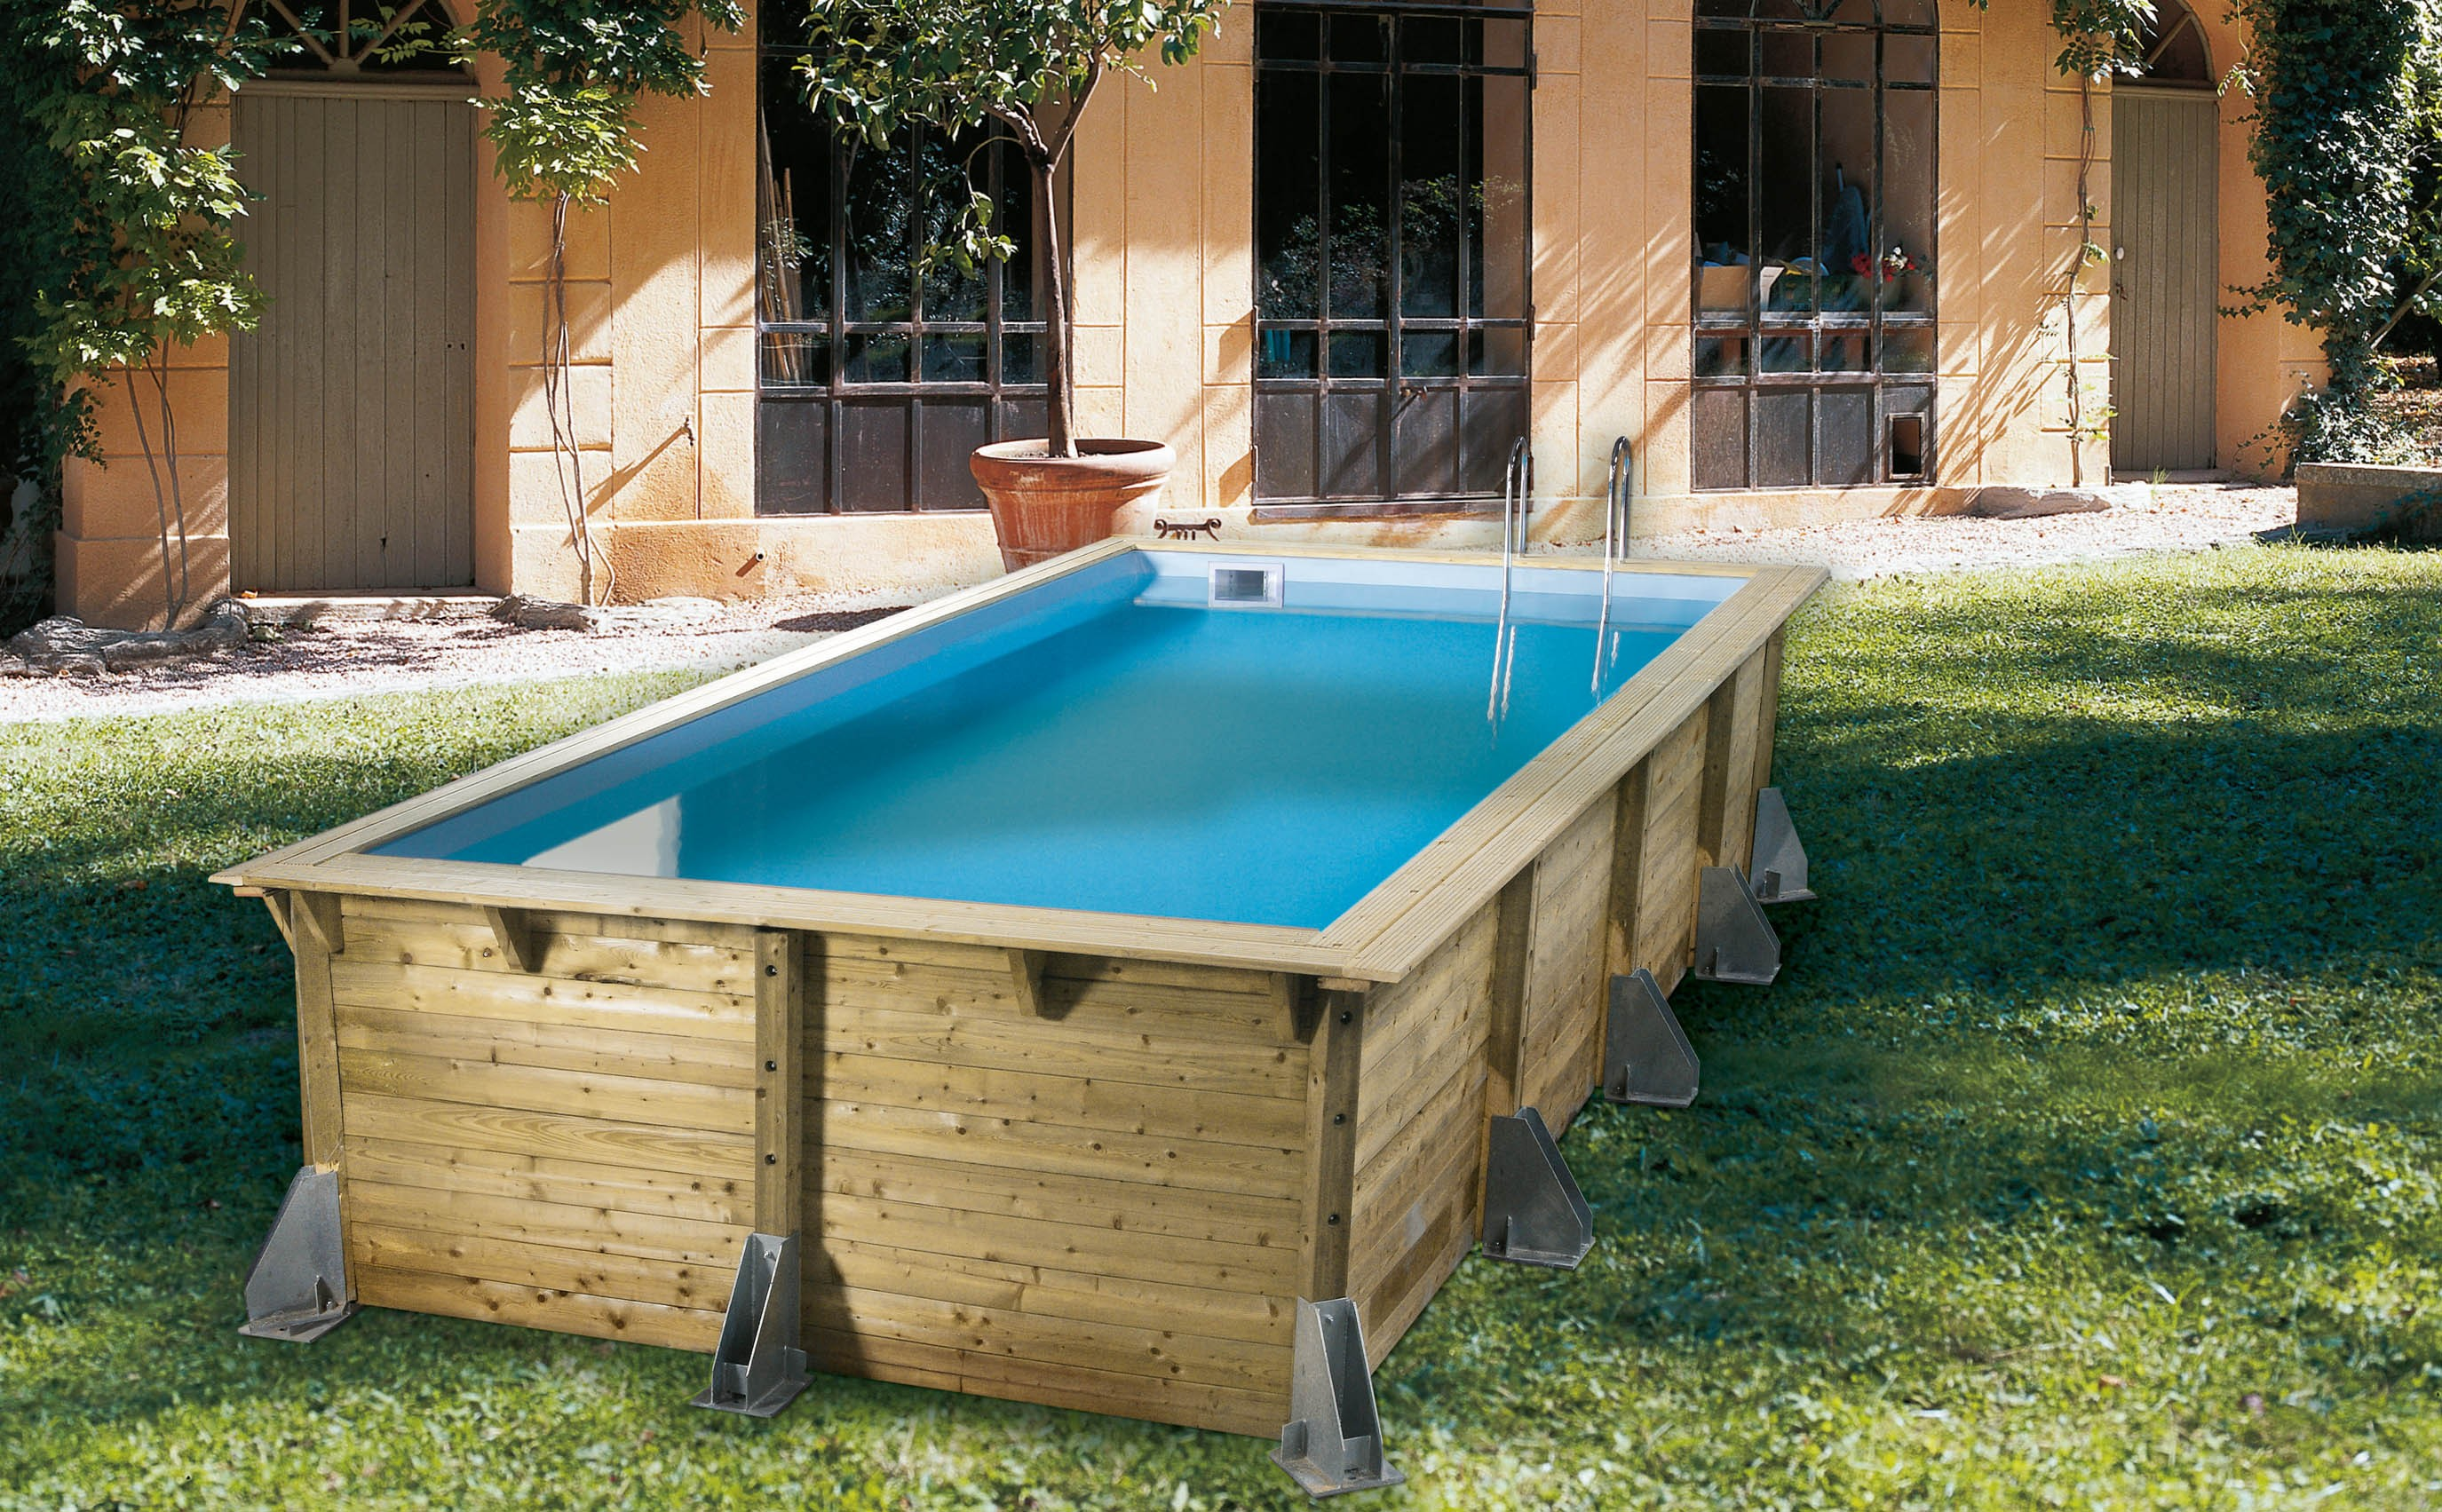 Piscine rectangulaire hors sol for Piscine autoportee en bois